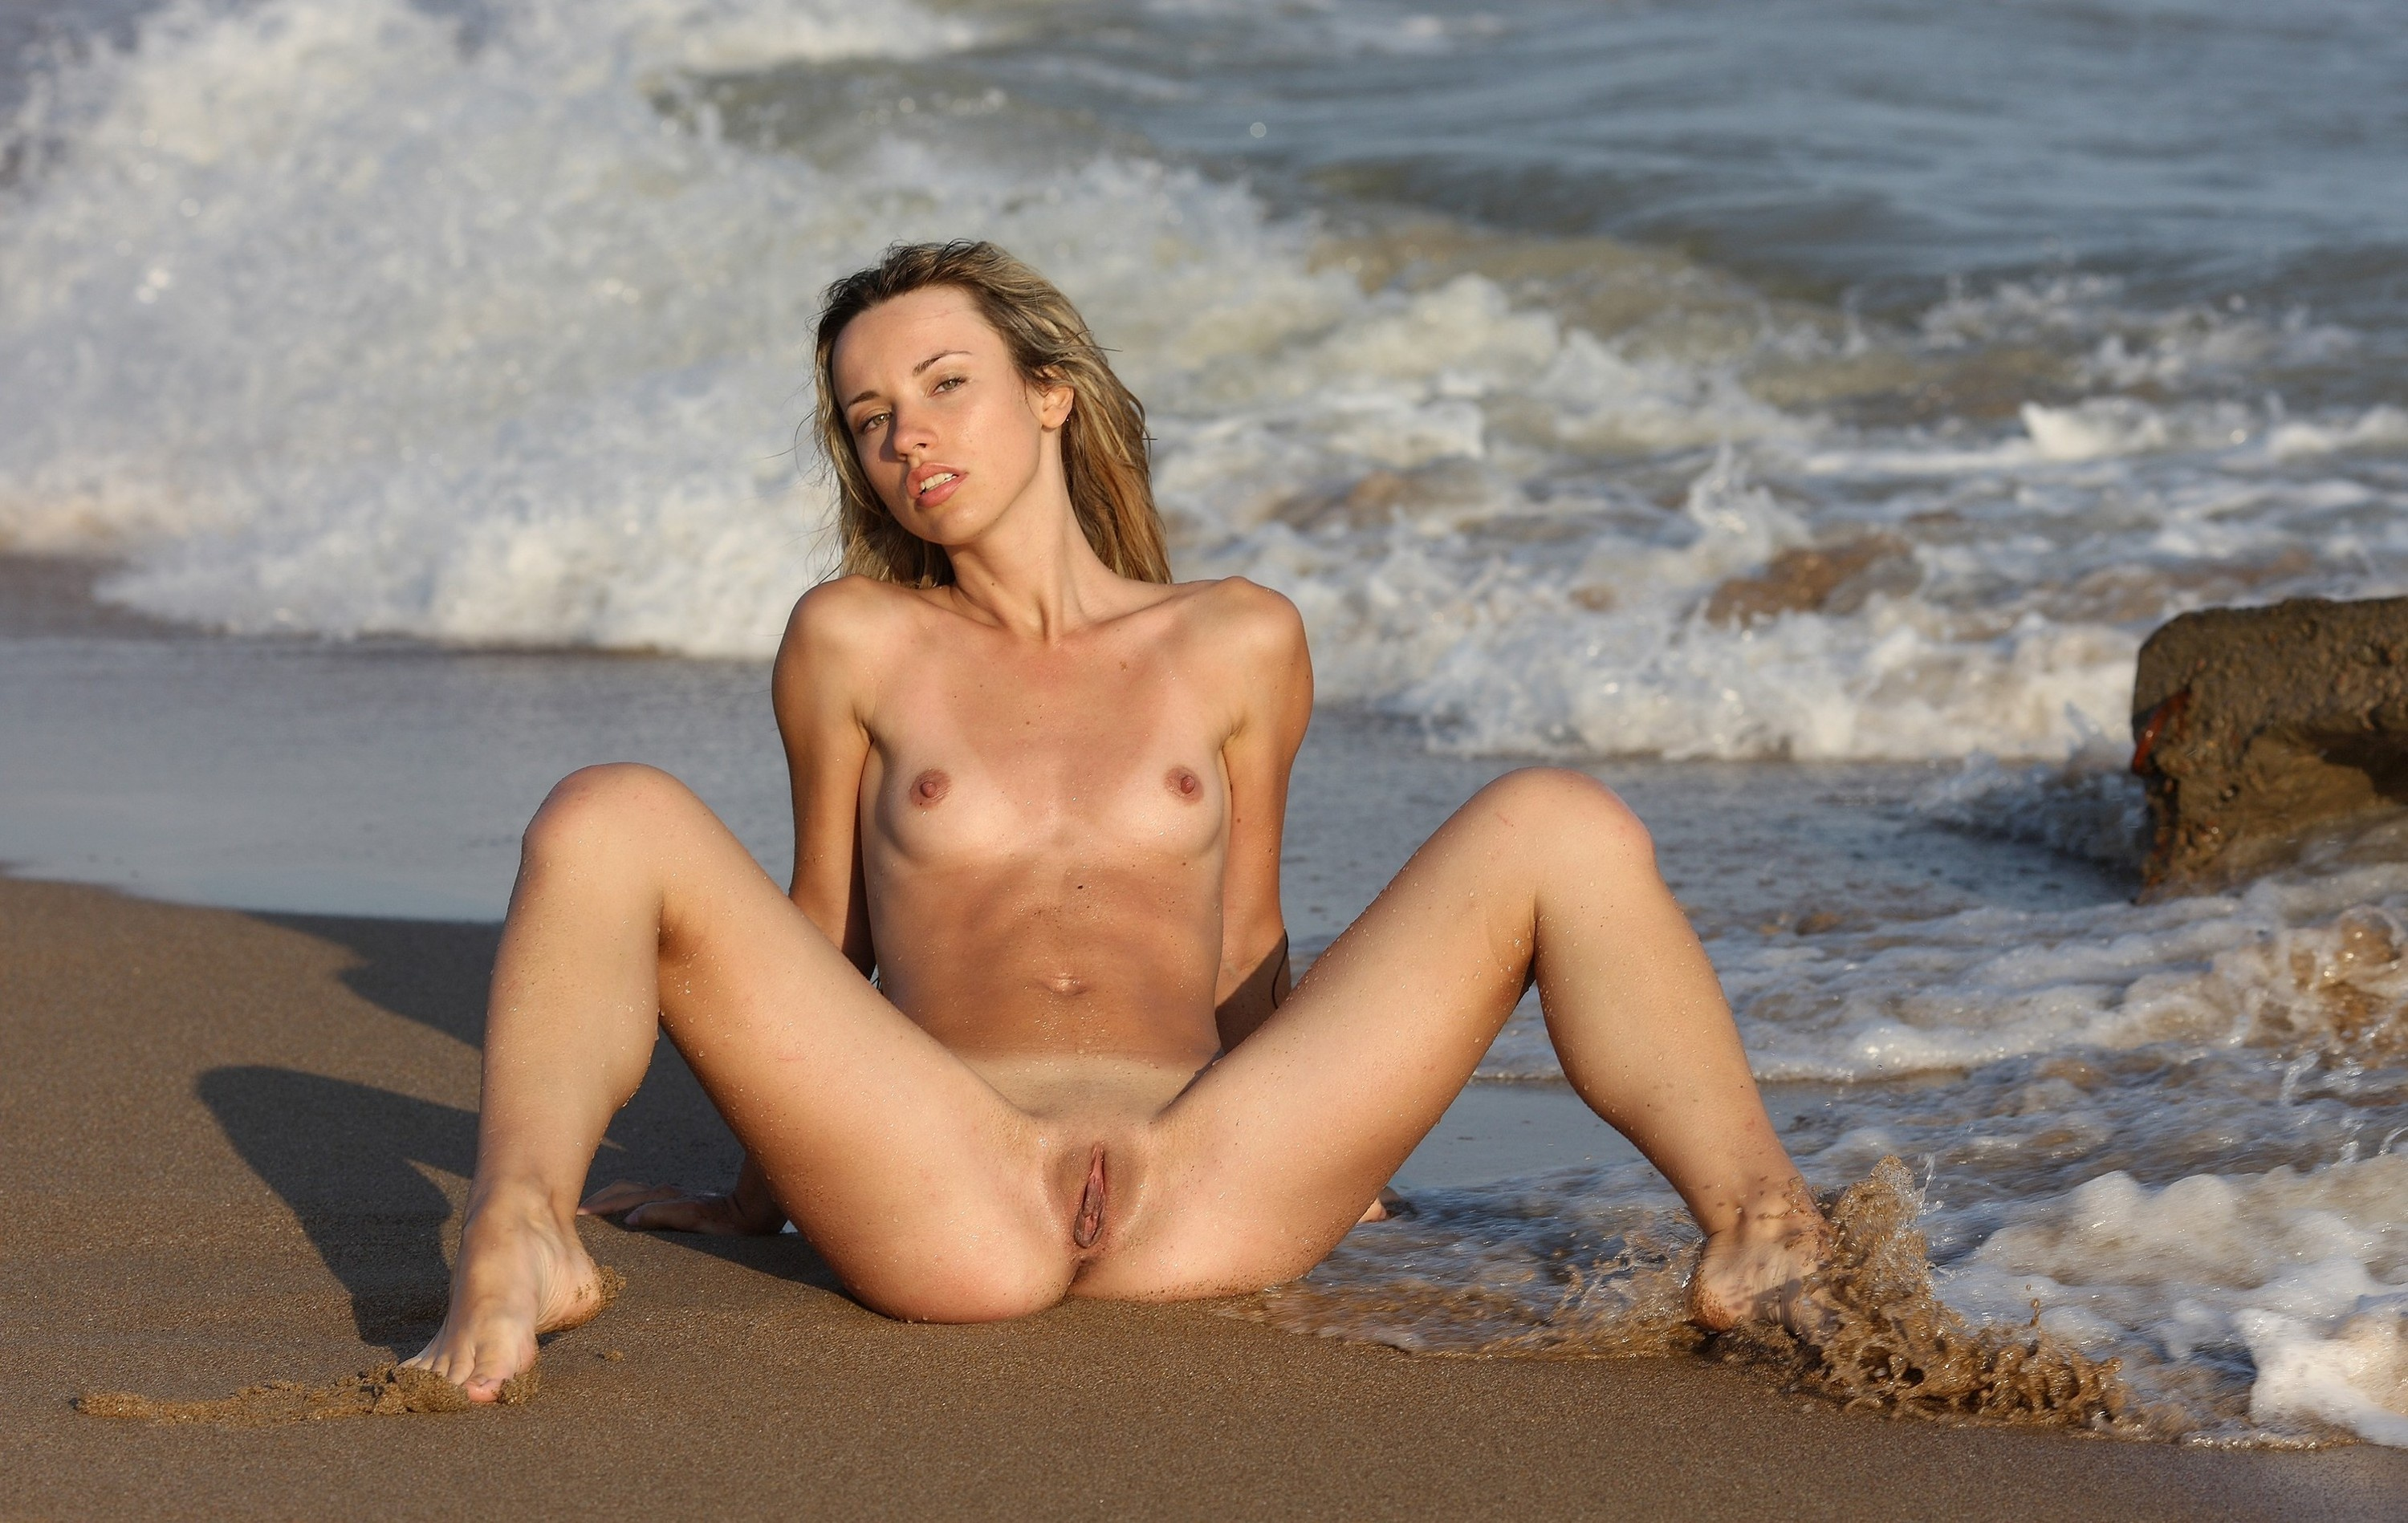 Wallpaper Blonde, Naked, Pussy, Boobs, Wet, Water, Beach -9922